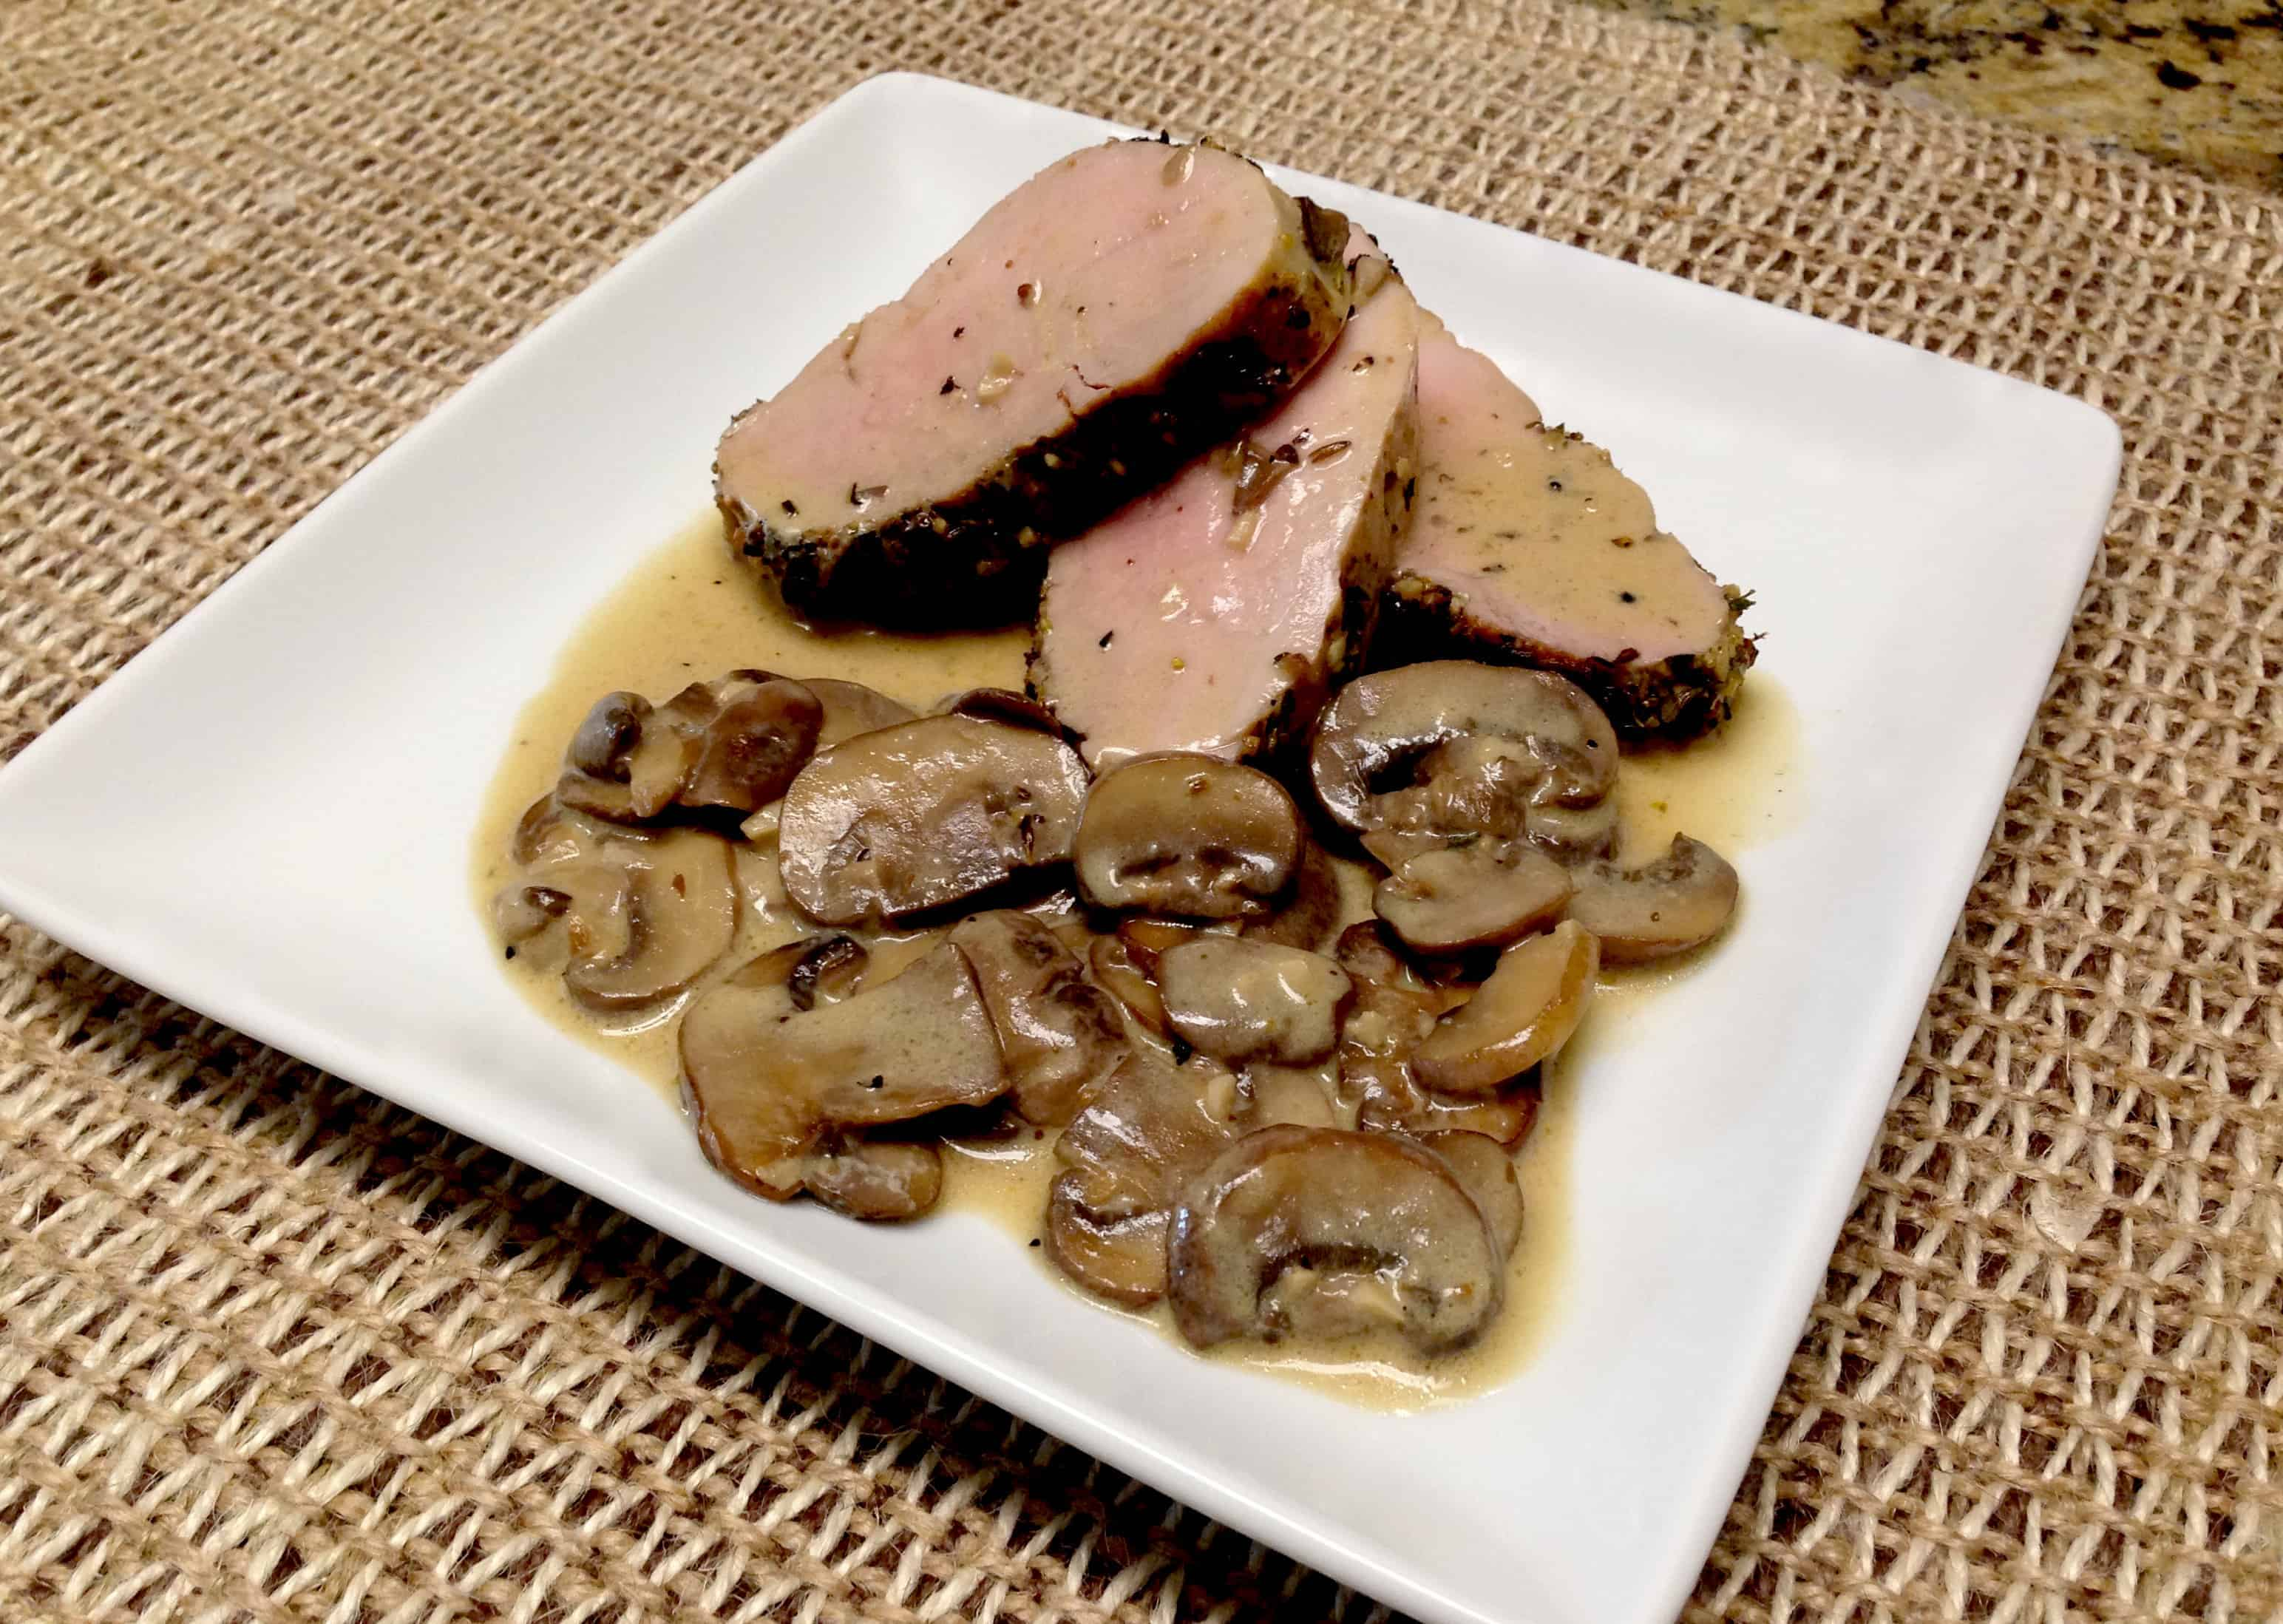 Herb Crusted Pork Tenderloin with Mushroom Gravy - Keto and Low Carb